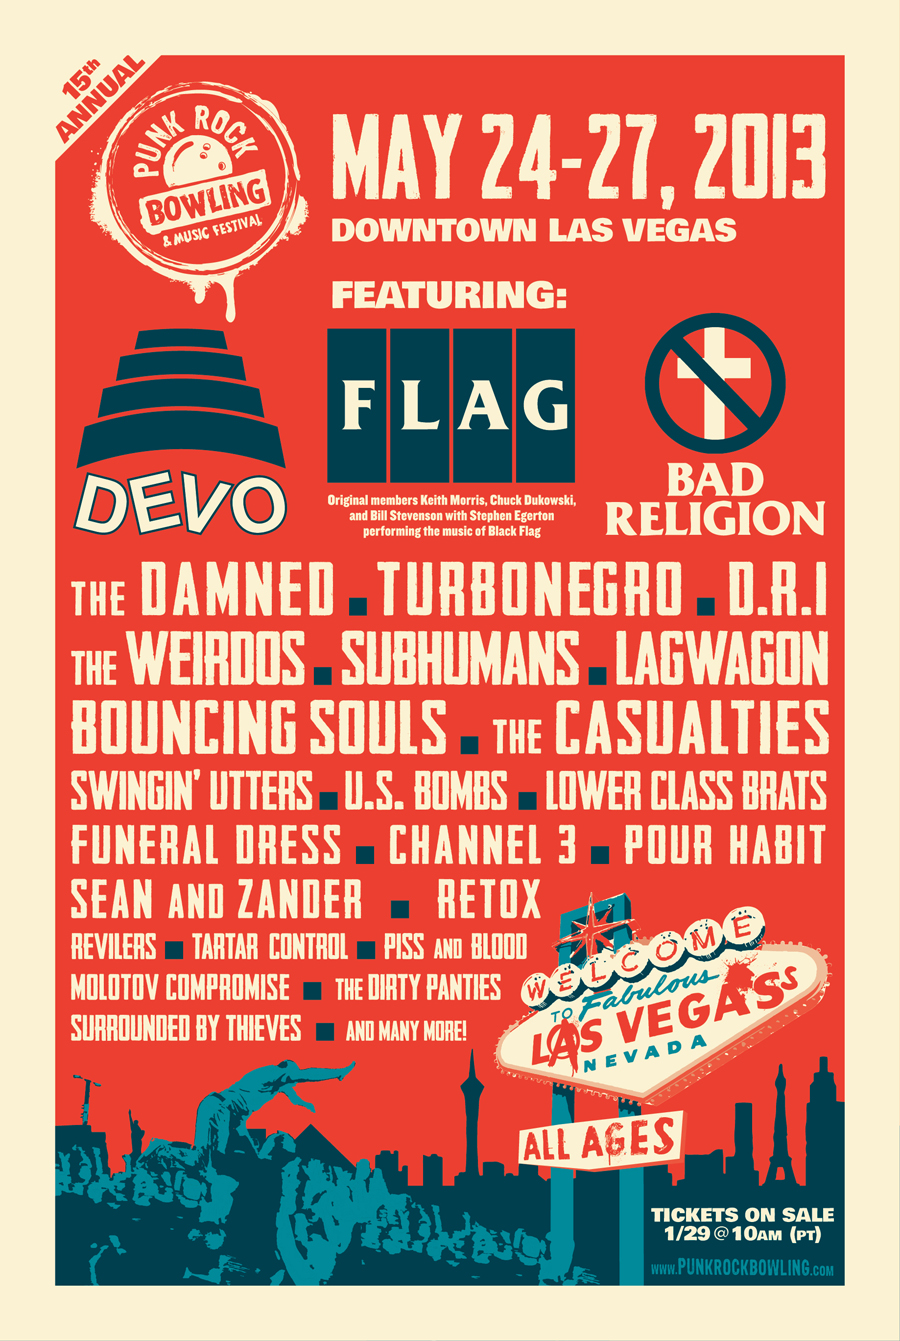 Punk Rock Bowling Teaser Devo and more added to Punk Rock Bowling 2013